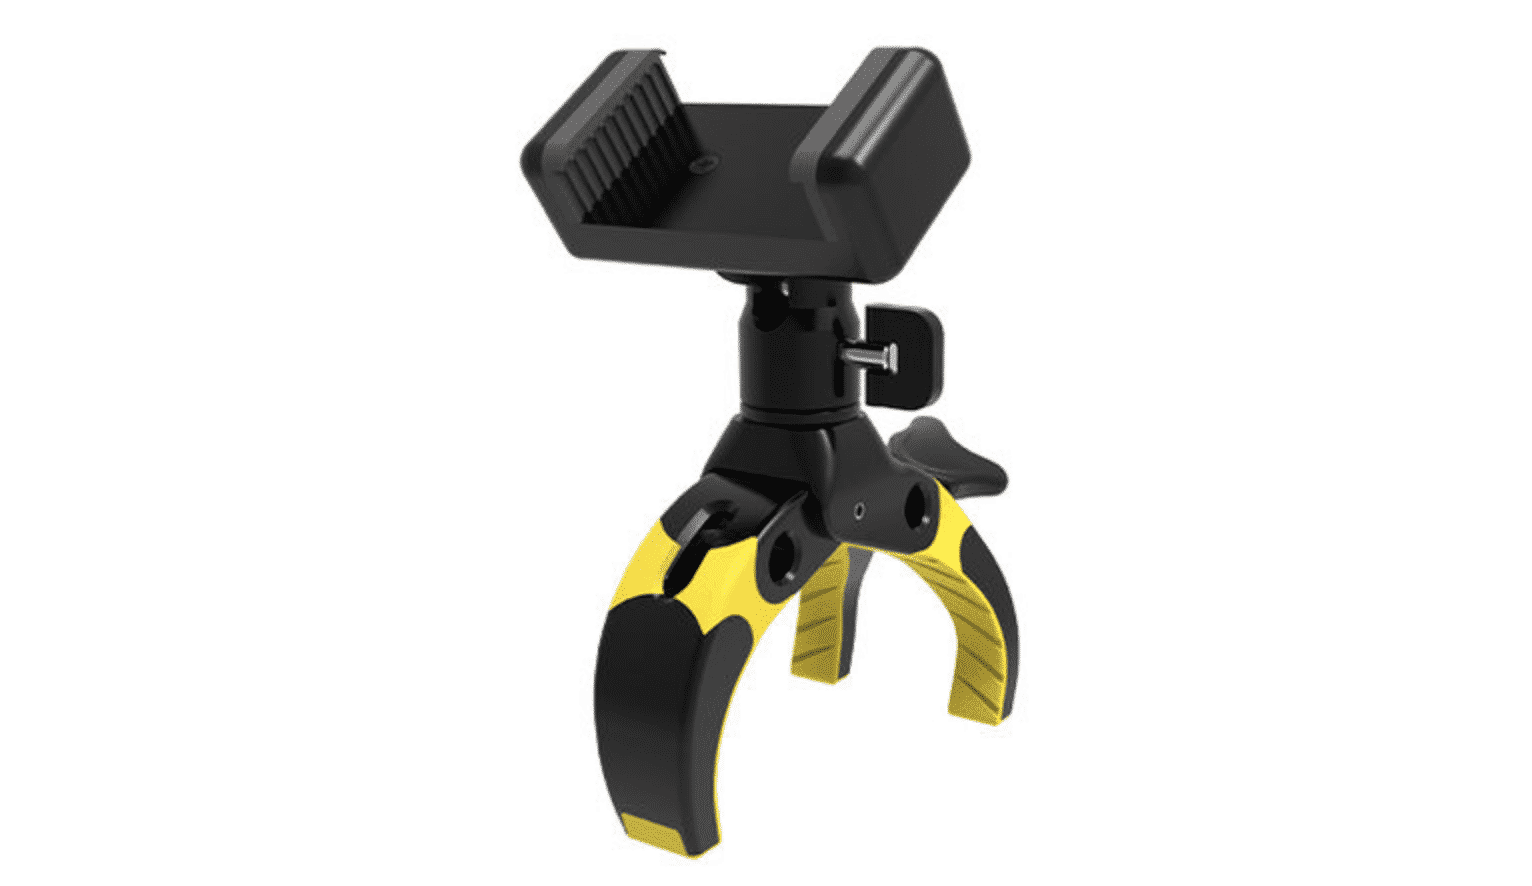 myGEKOgear MagiClaw Smartphone and Camera Mount